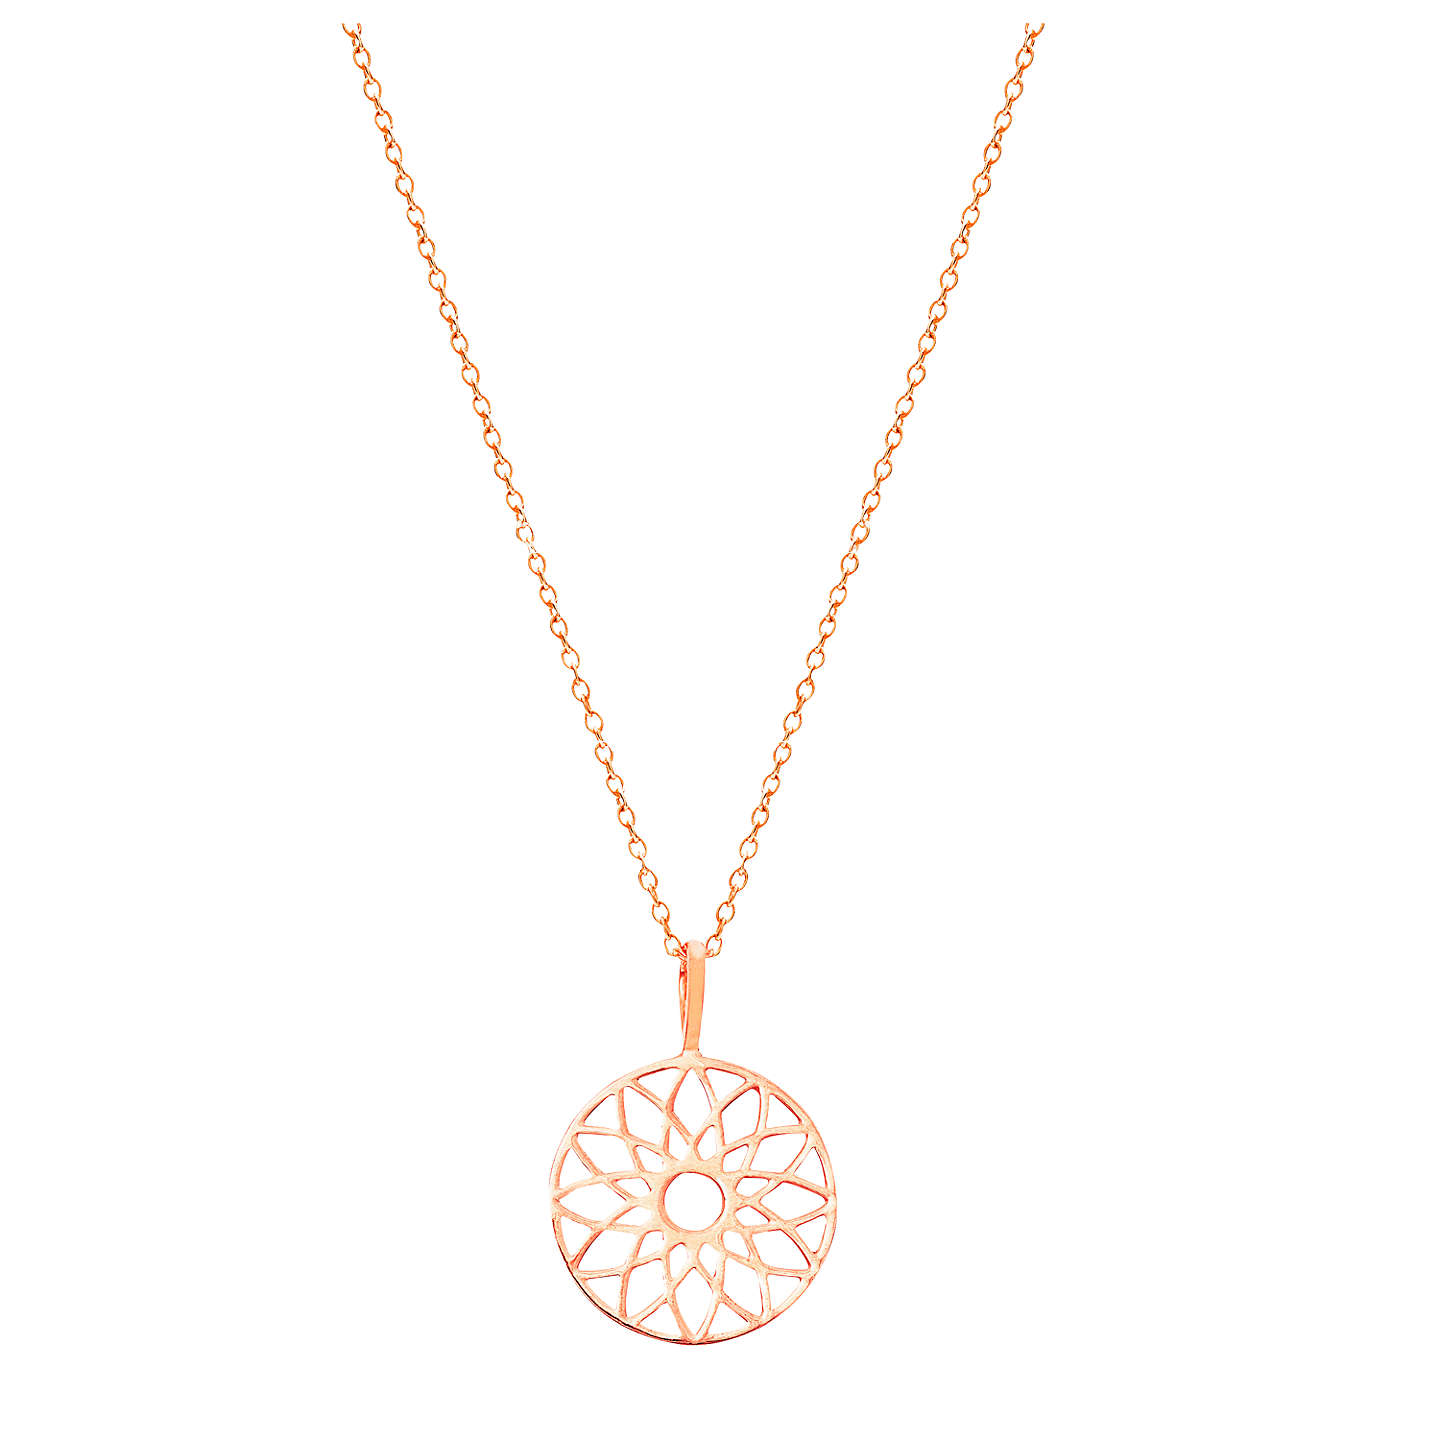 chlobo catcher necklaces gold jewellery image dream necklace rose